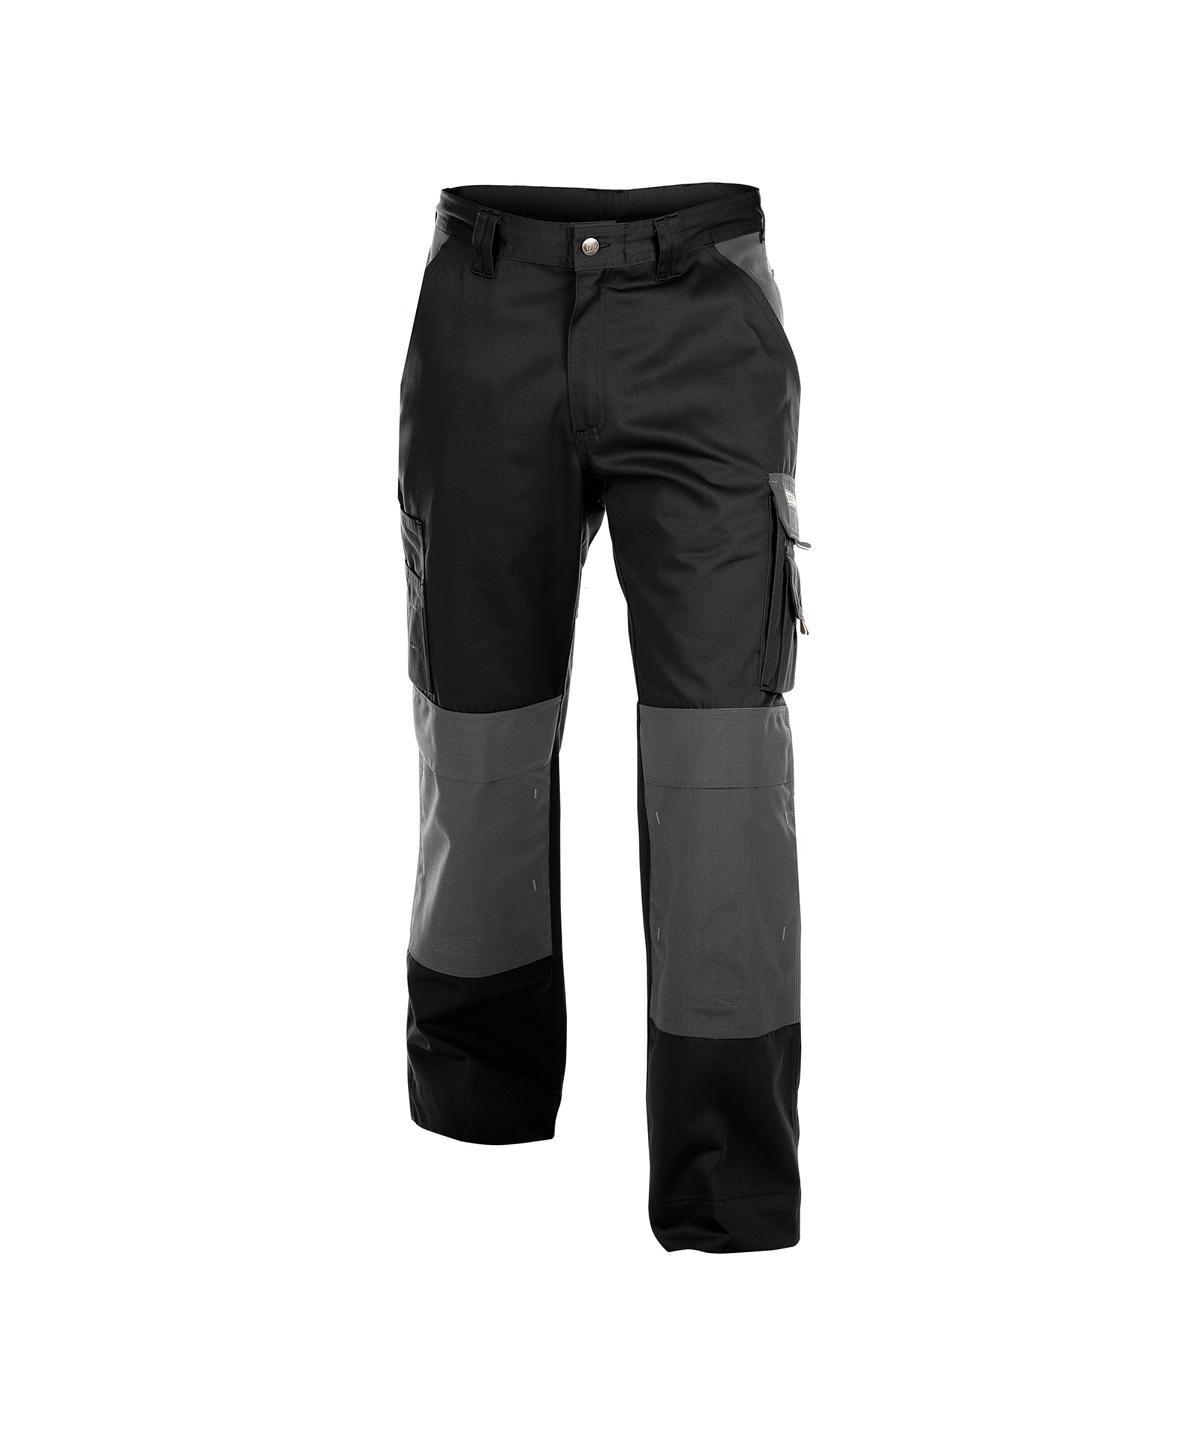 (46)DASSY TROUSER BOSTON PESCO61 (245 gr) BLACK/GREY